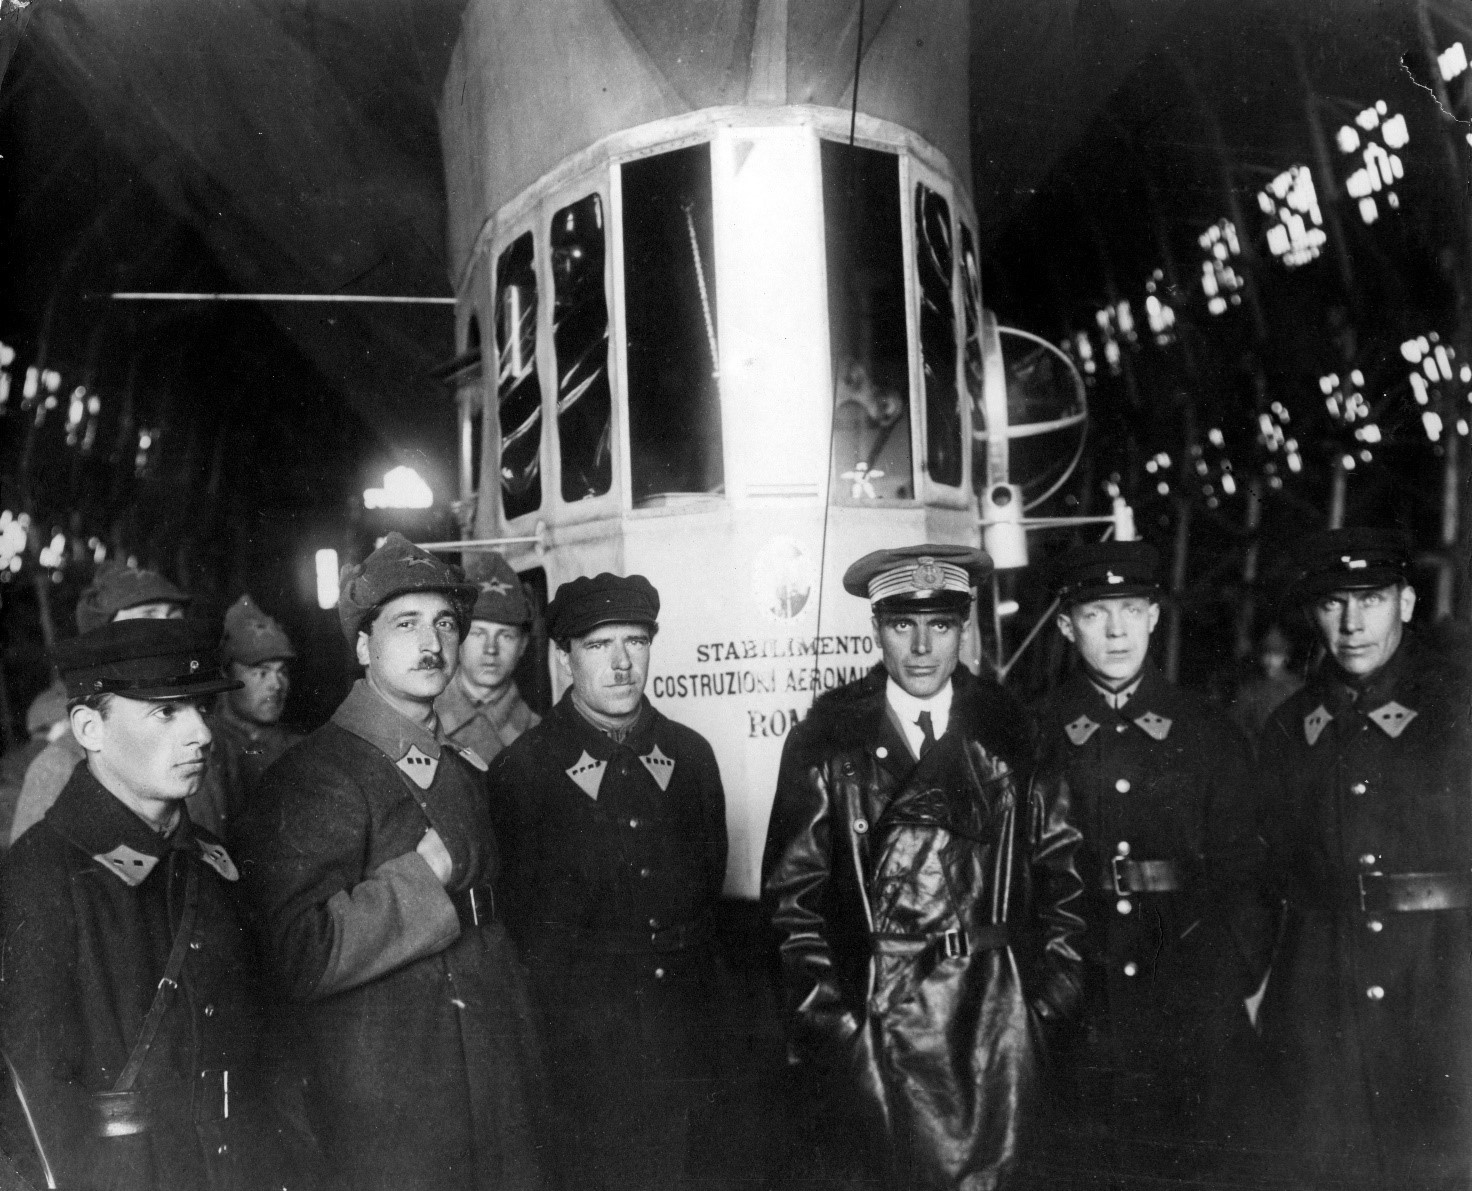 95 years ago – April 15, at 20:50 (local time)